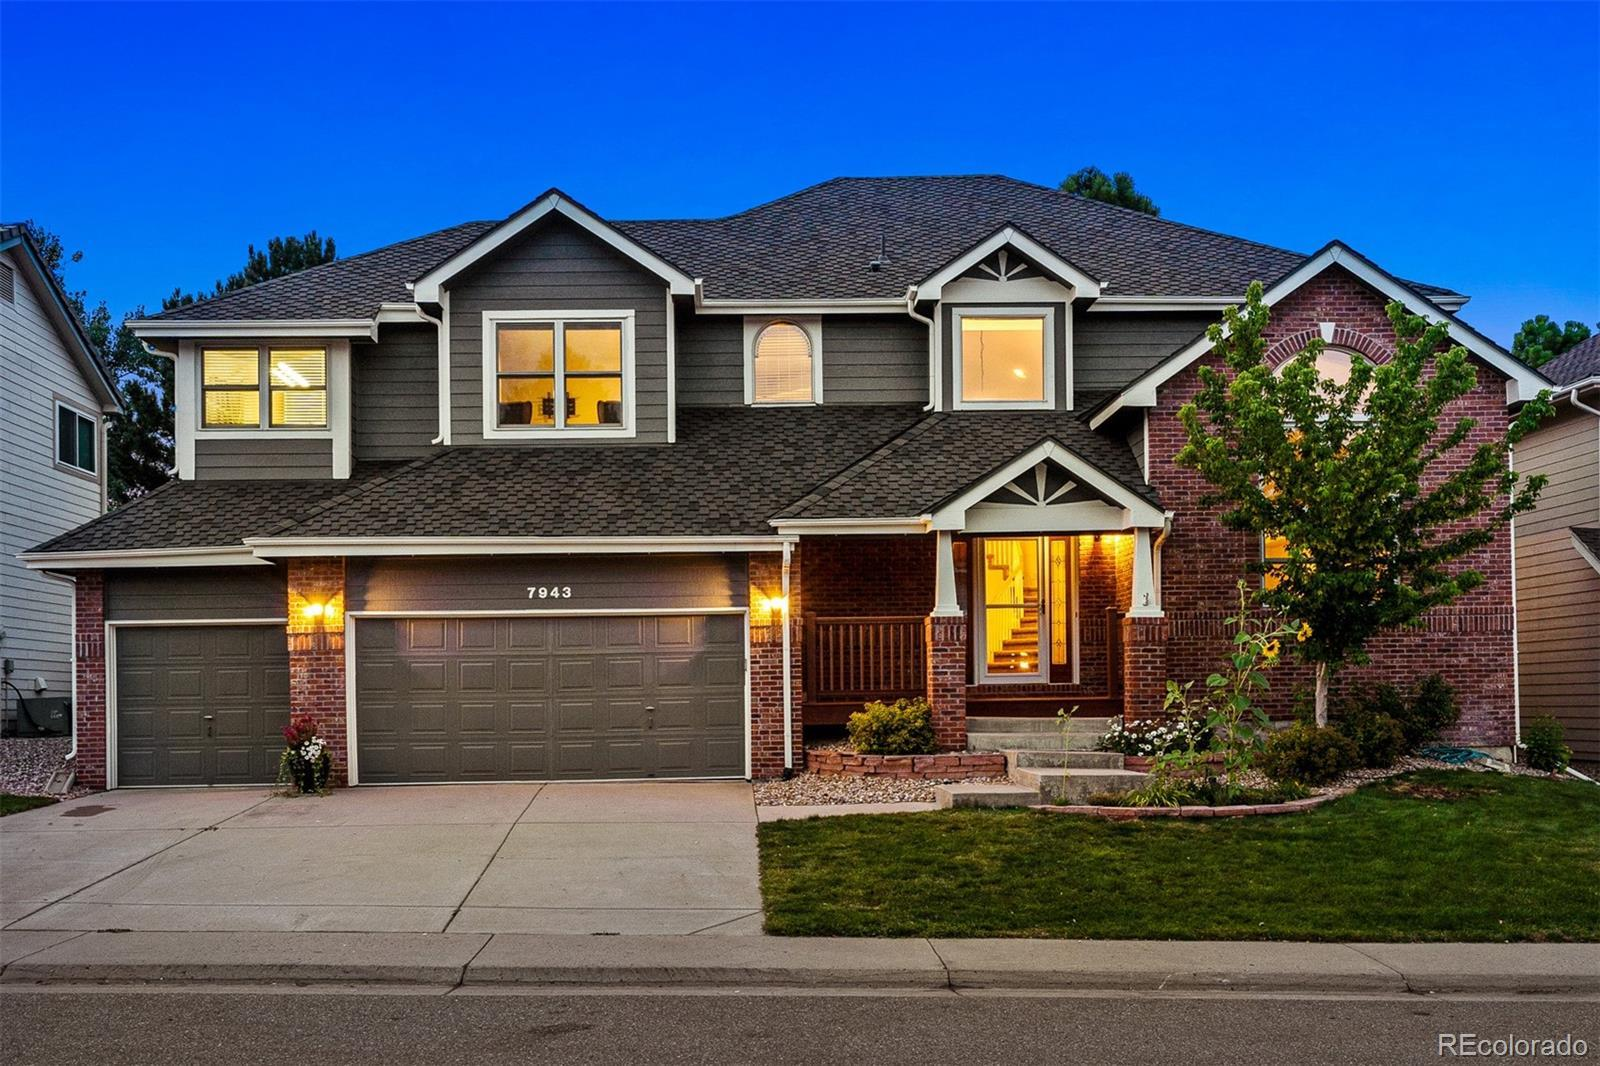 7943 Chaparral Road, Lone Tree, CO 80124 - #: 7370494